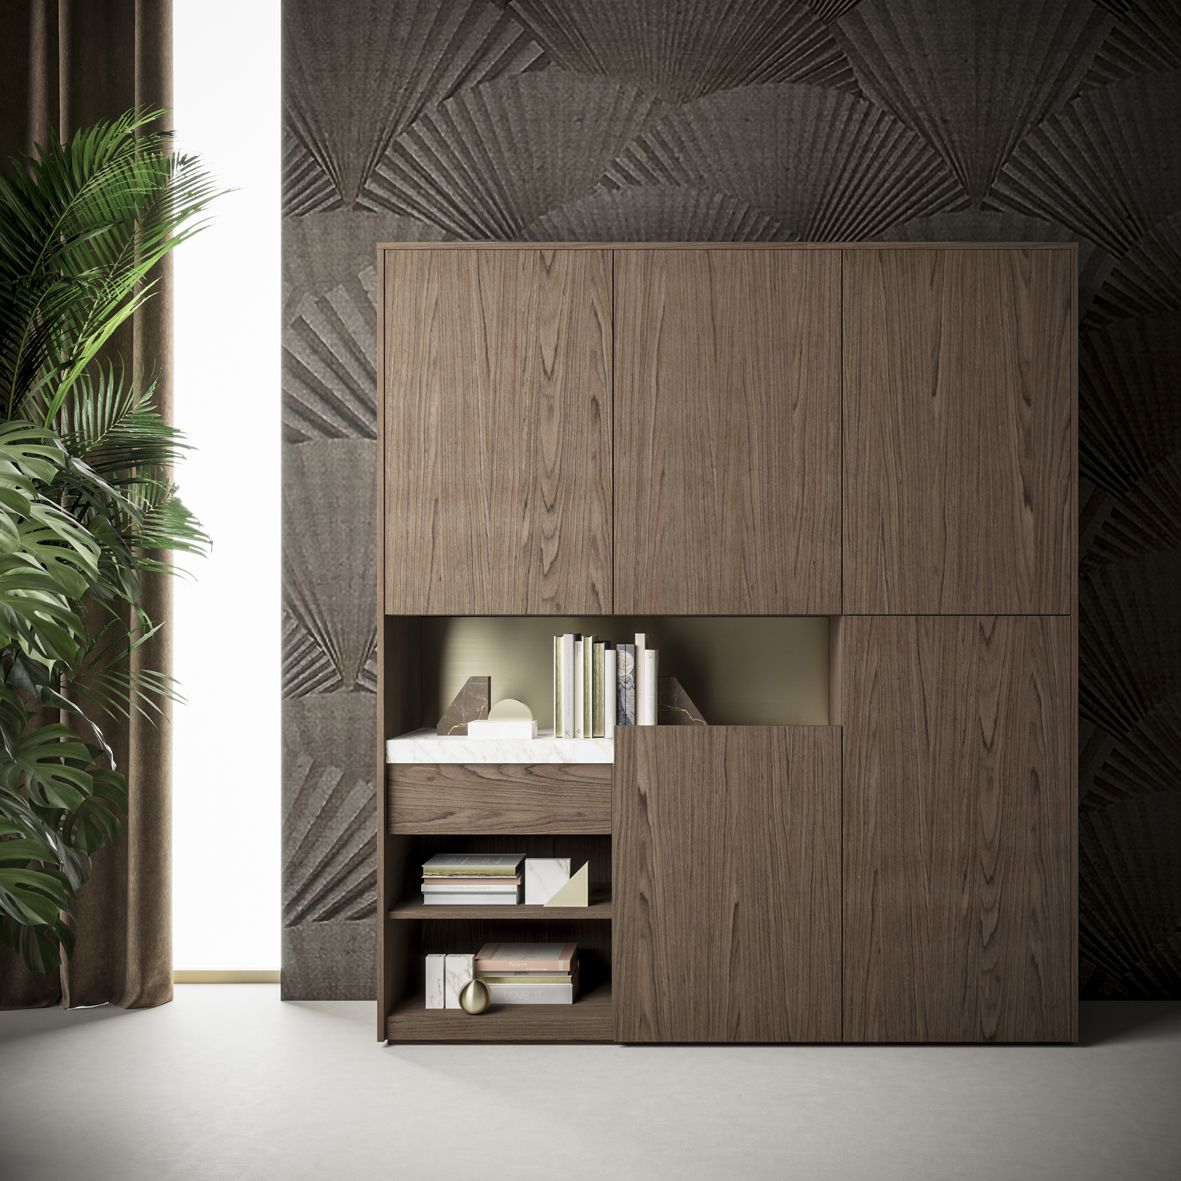 BLOCK 2.0 executive office desk by Prof Office | ad ...